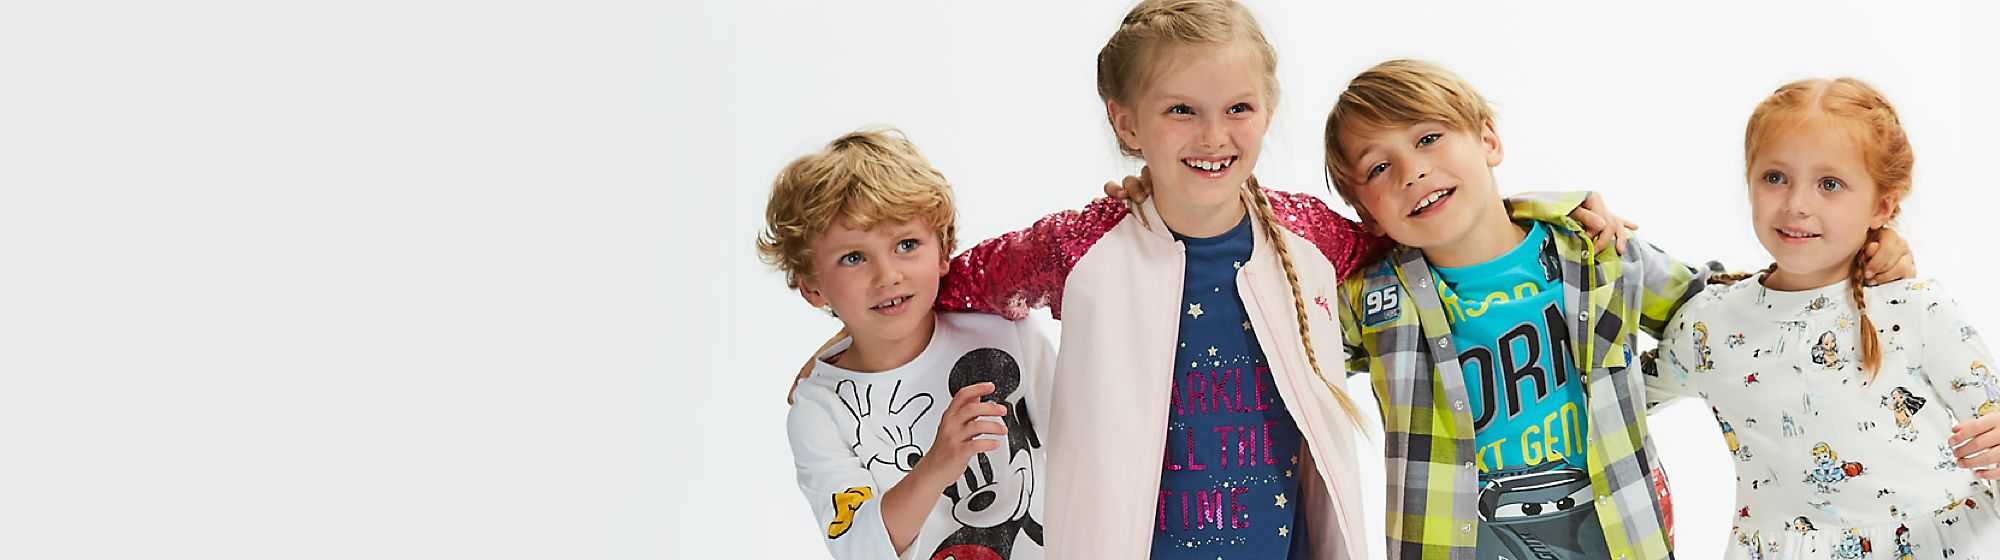 Disney Kids Disney has all the clothes kids want. Whether your little one is a budding Jedi, helpful hero or a perfect Princess, our range has it all. DISCOVER MORE